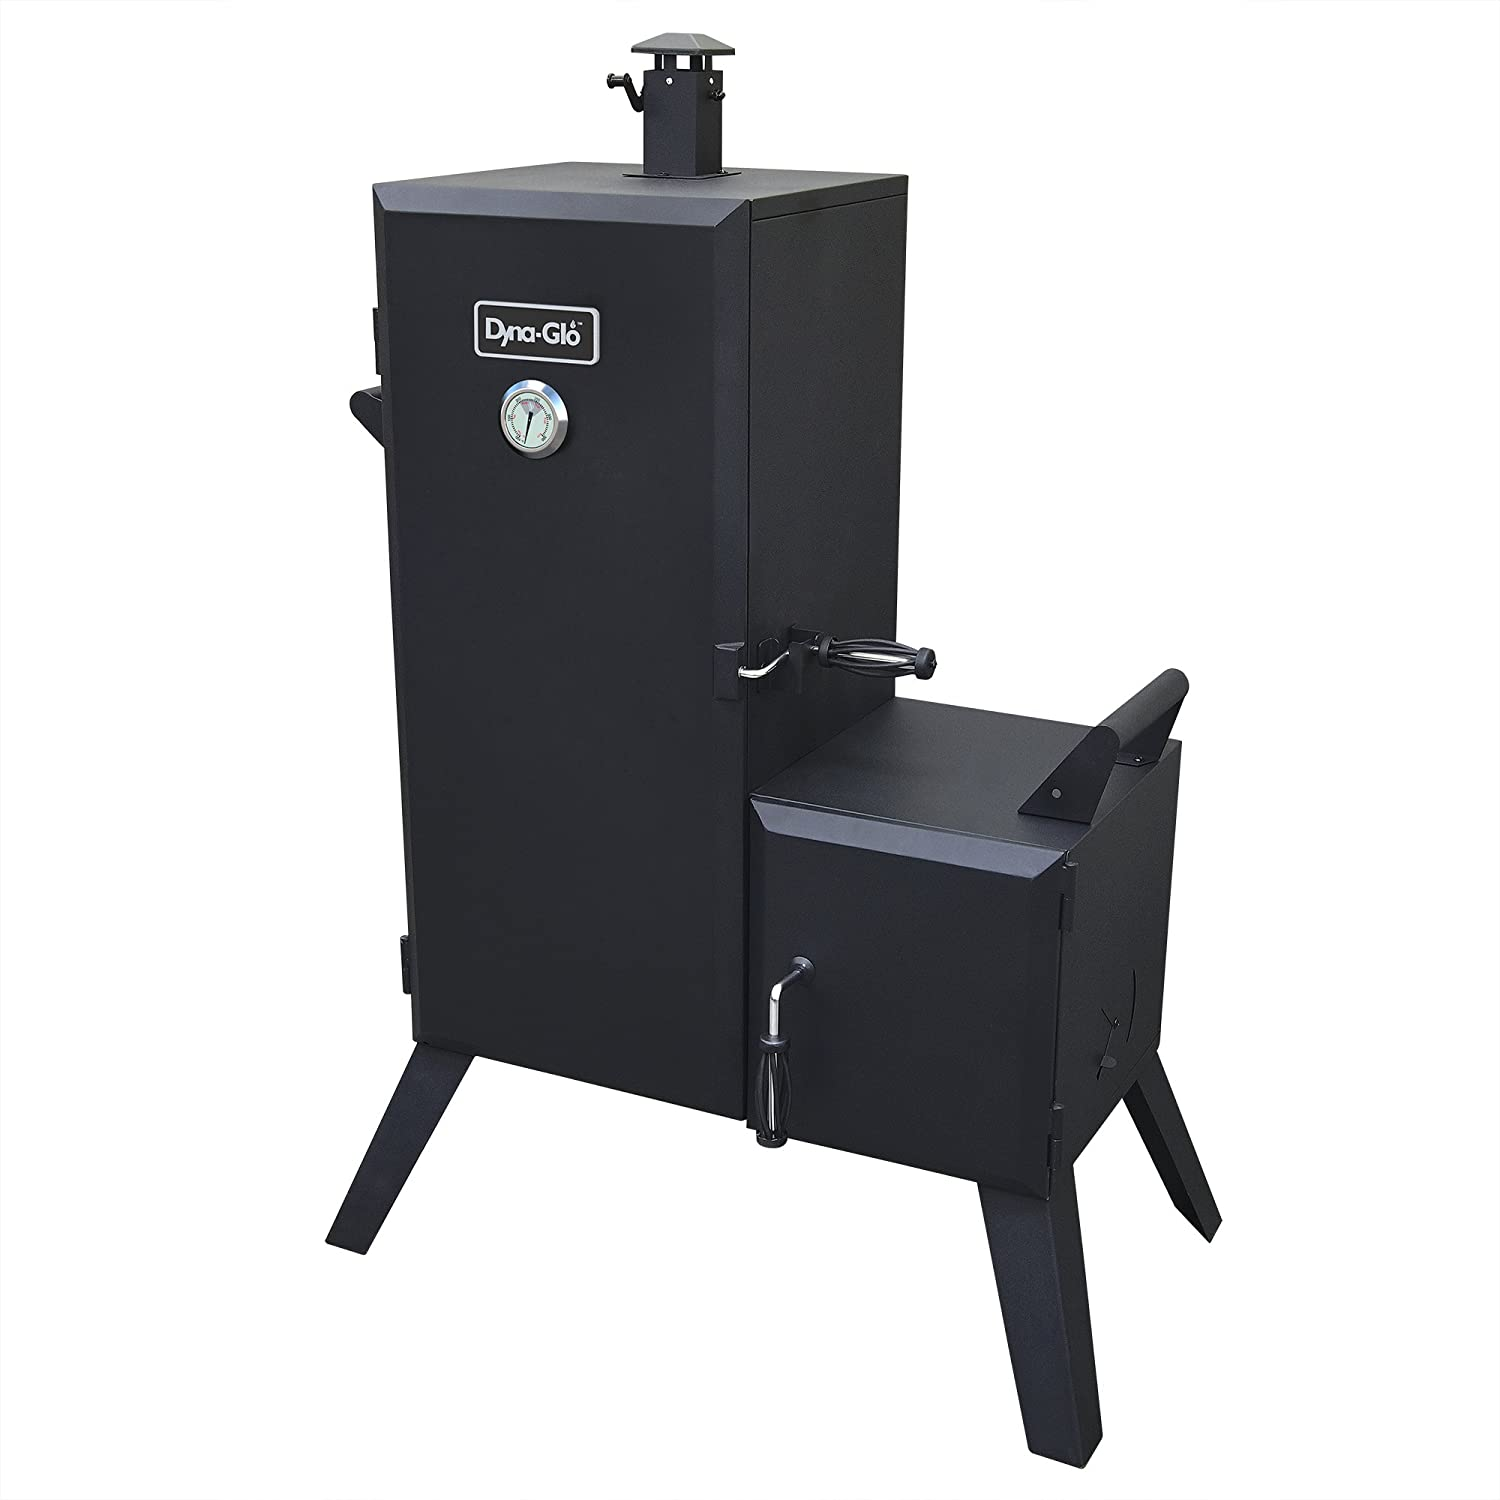 Top 5 Best Offset Smokers under $500 (Reviews in 2020) 2